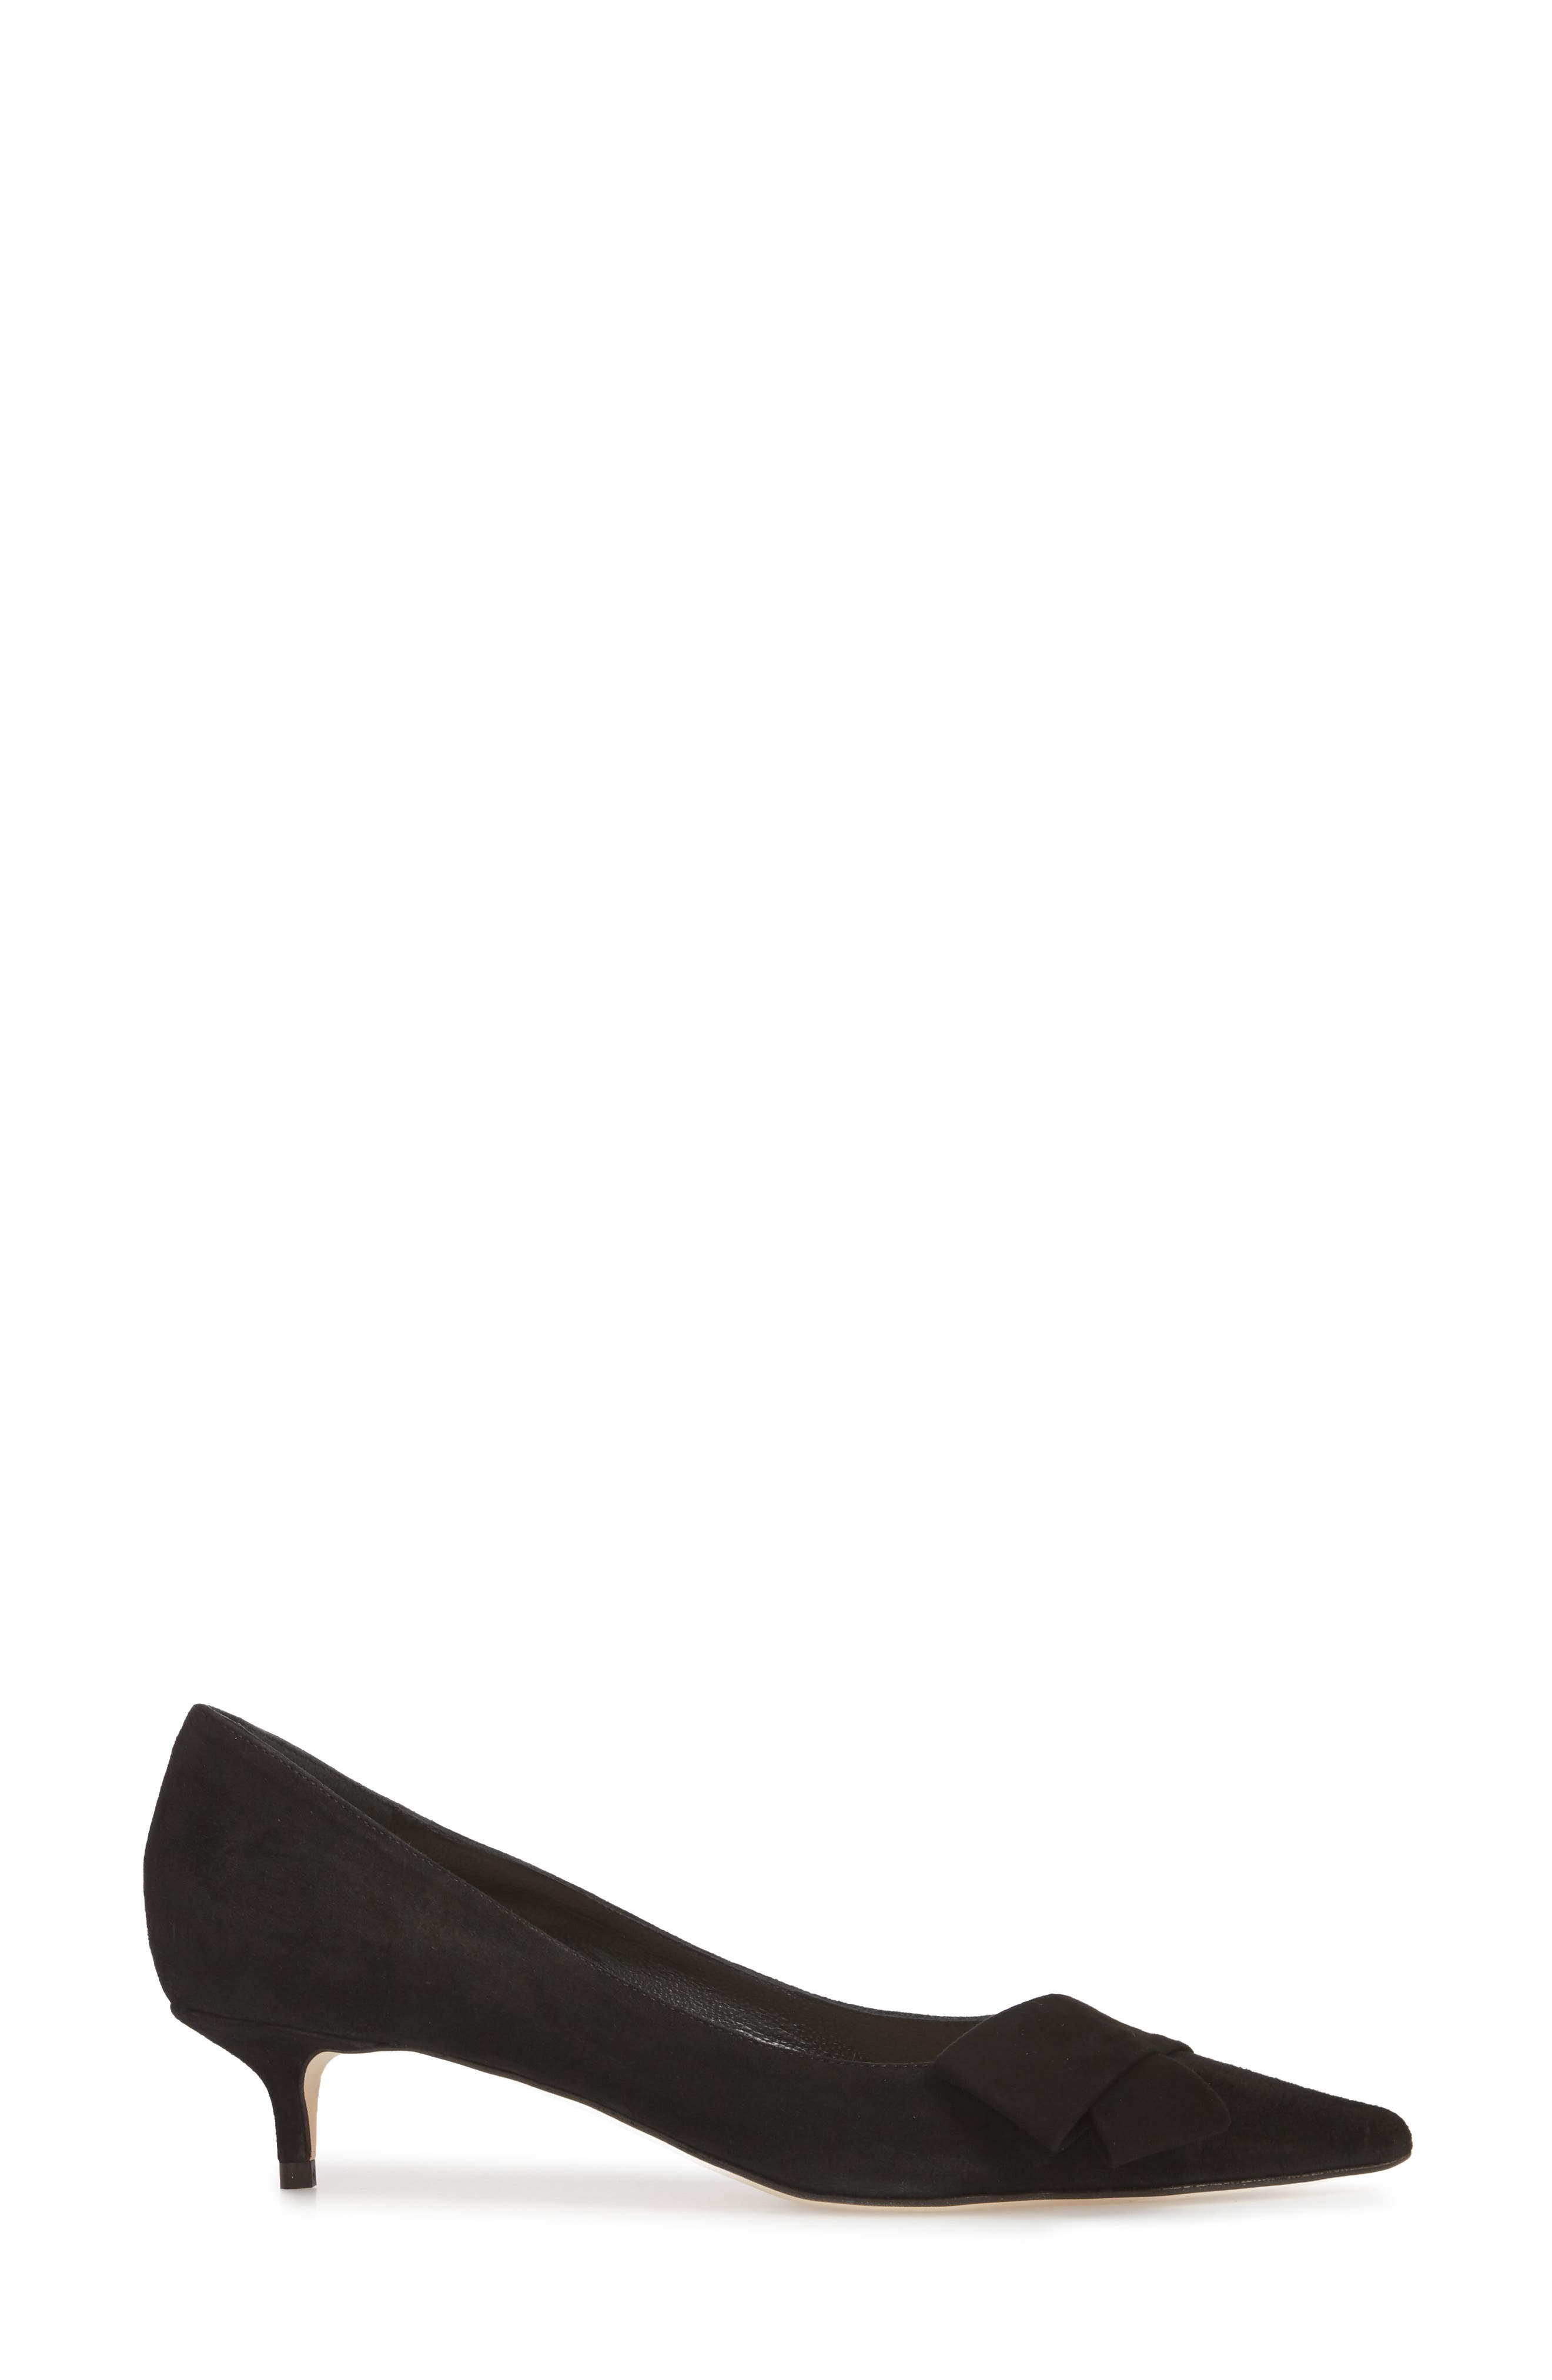 Butter Bliss Pointy Toe Pump,                             Alternate thumbnail 7, color,